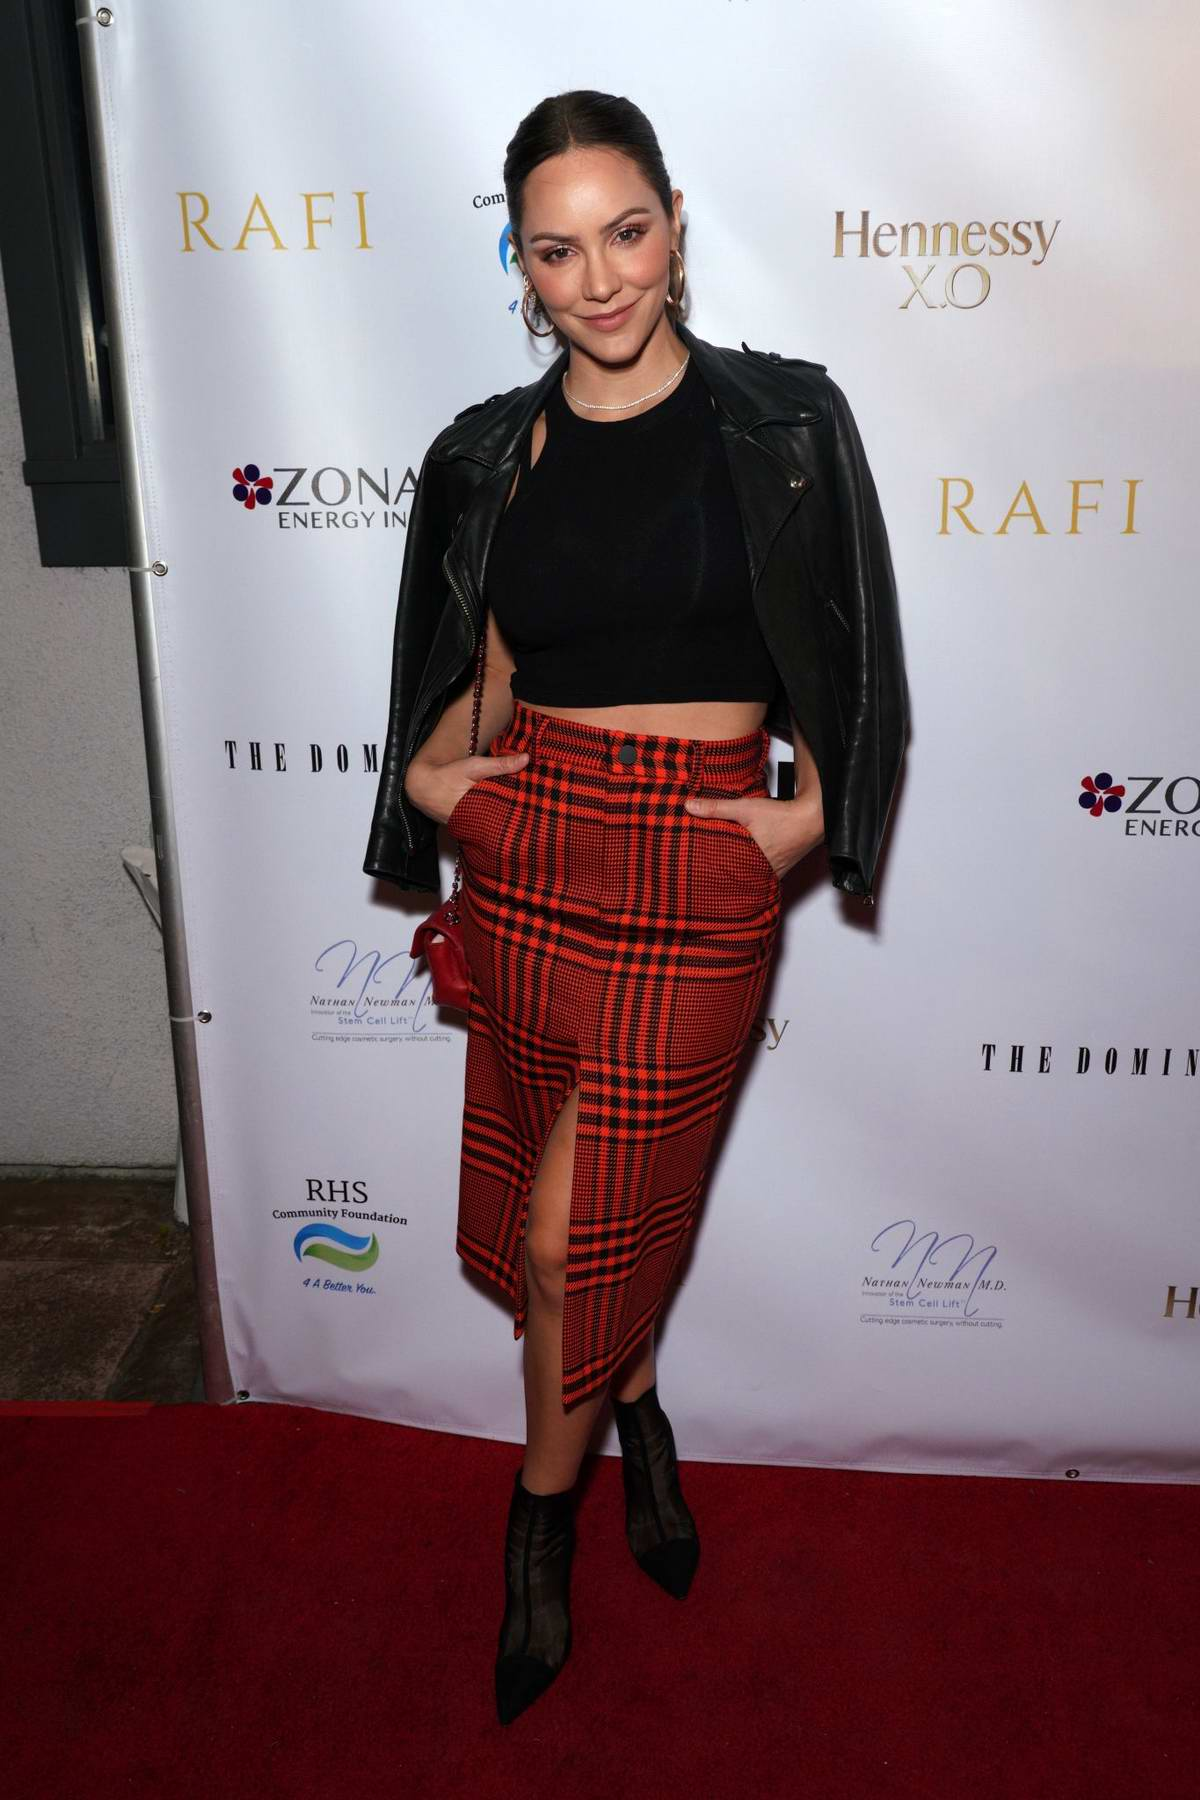 Katharine McPhee attends Gladys Knight's 75th birthday party in Hollywood, California